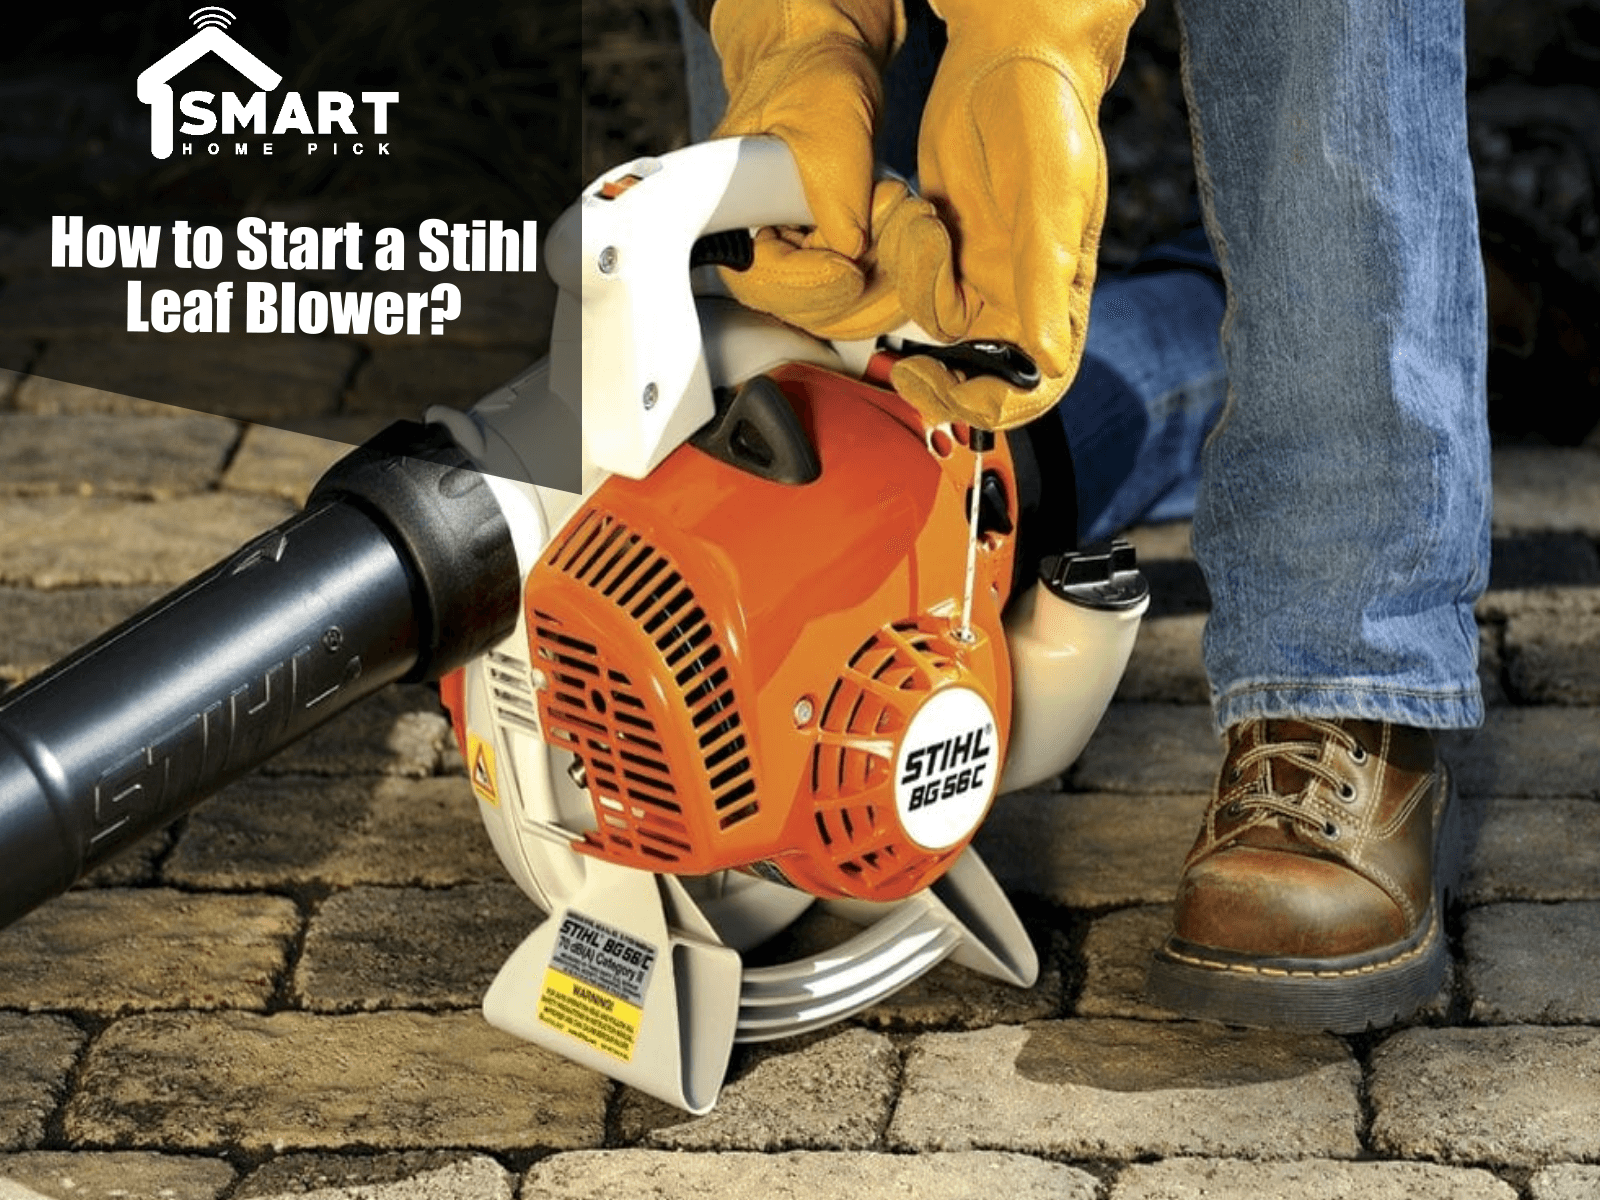 How to Start a Stihl Leaf Blower